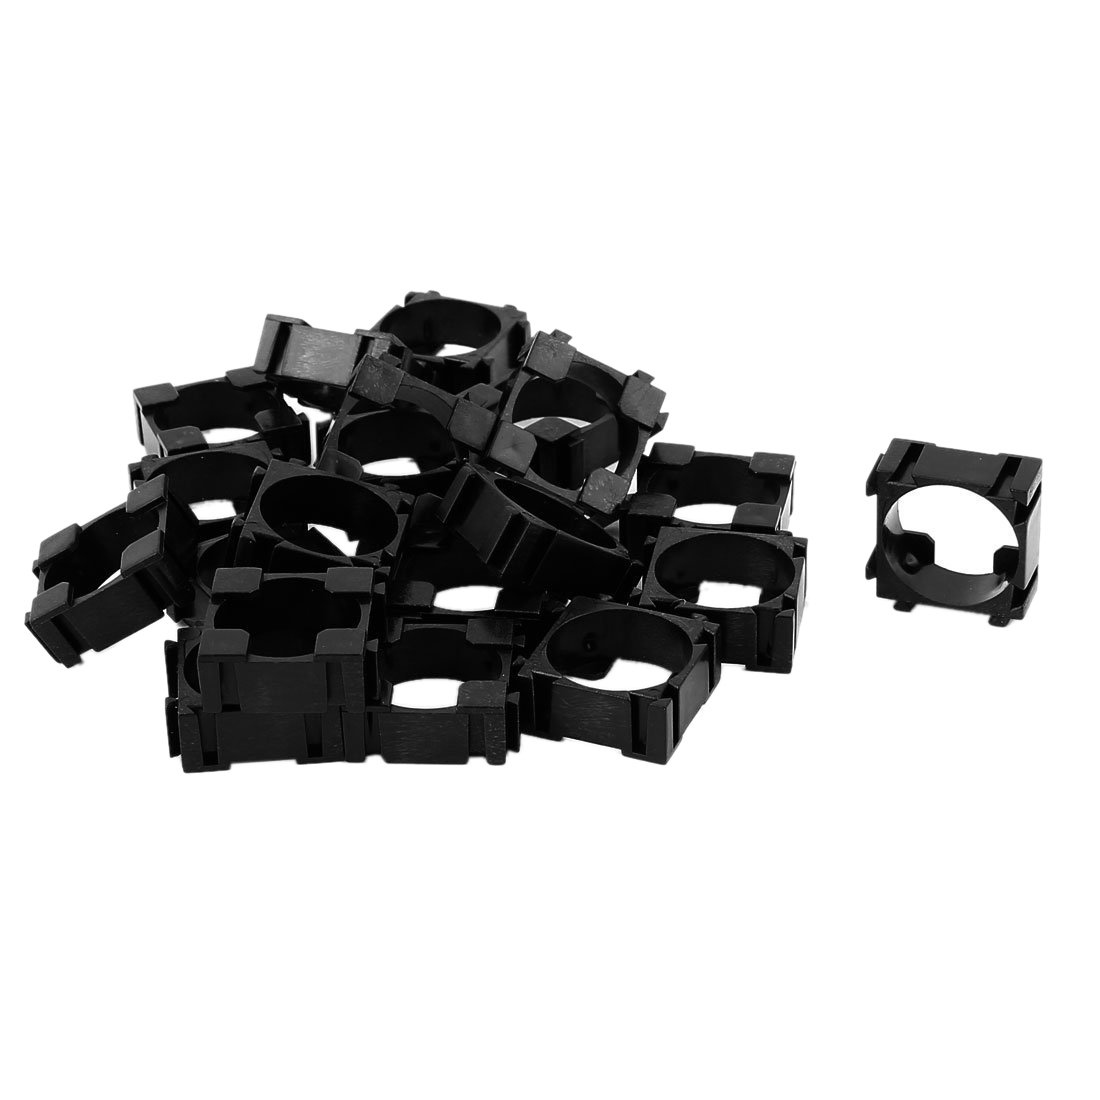 20 Pcs 18650 Lithium Cell Battery Holder Bracket for DIY Battery Pack